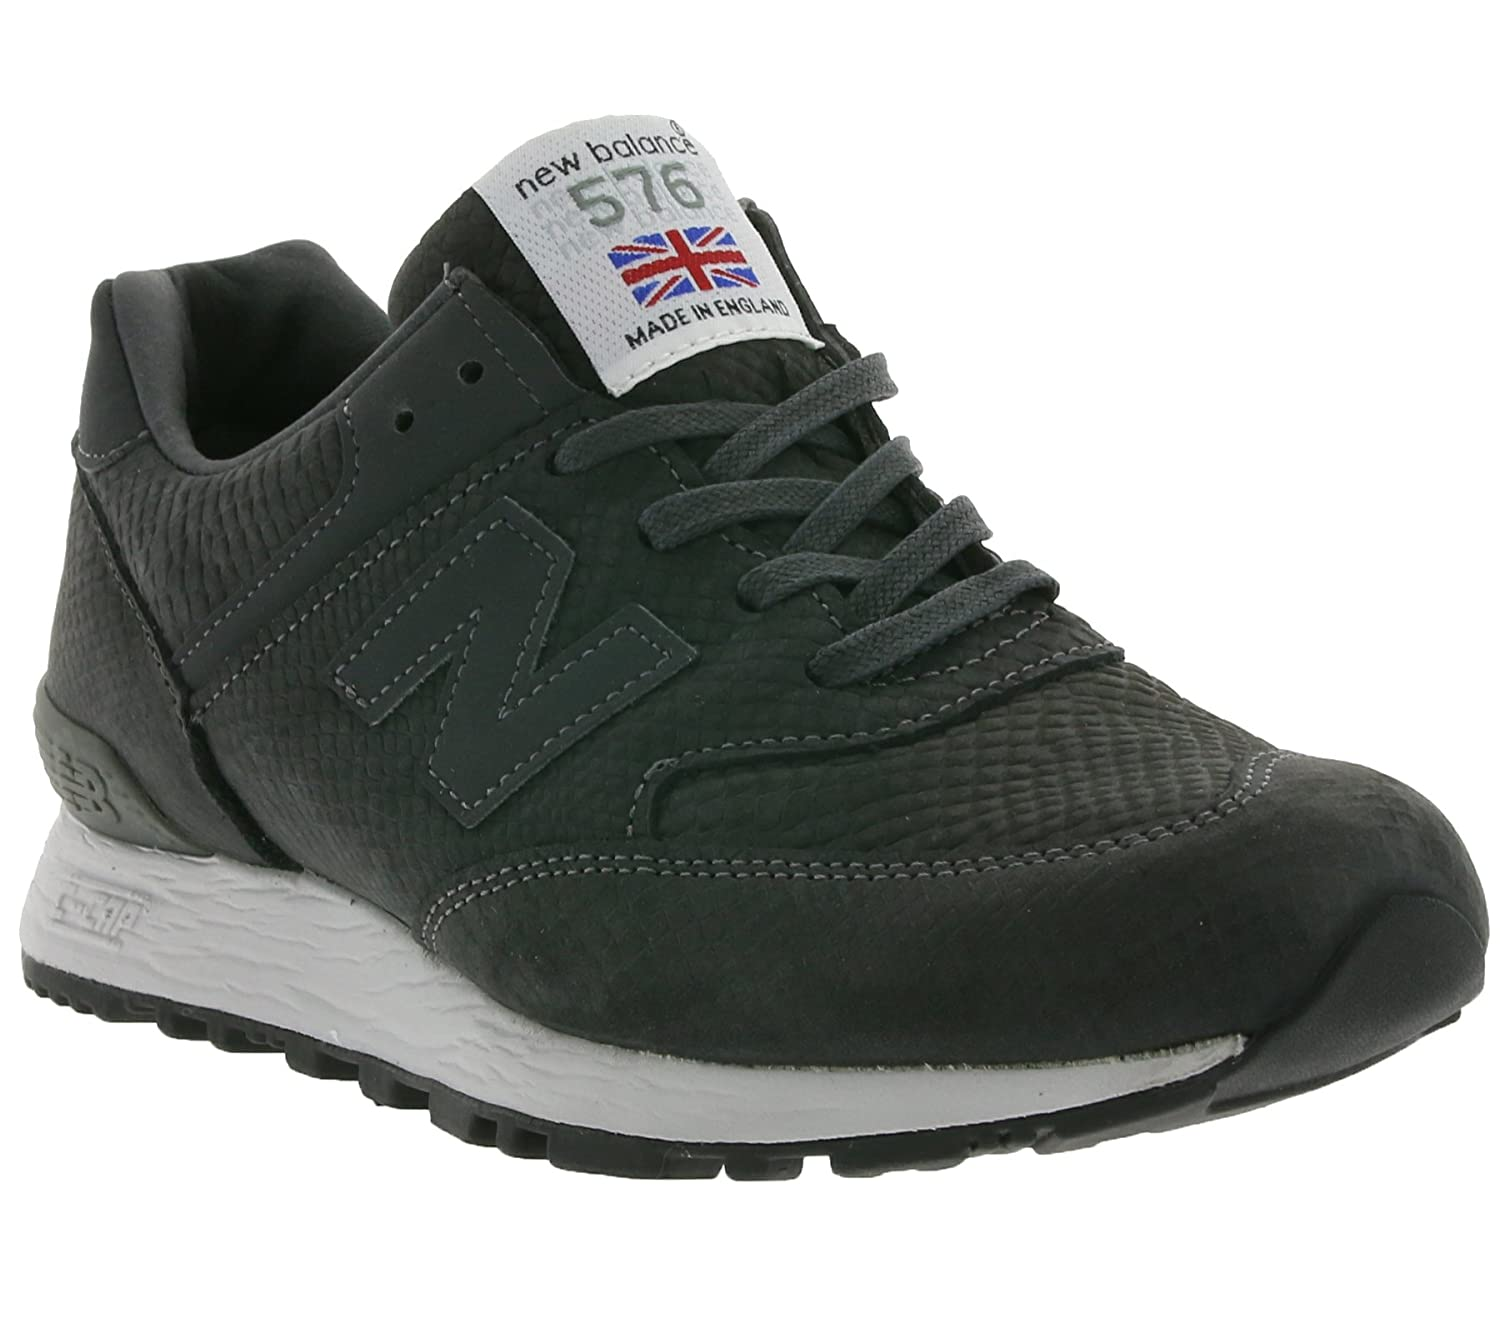 big sale ec286 3c753 New Balance 576 Women's Real Leather Sneaker Gray W576NRG Made in England,  Size:40